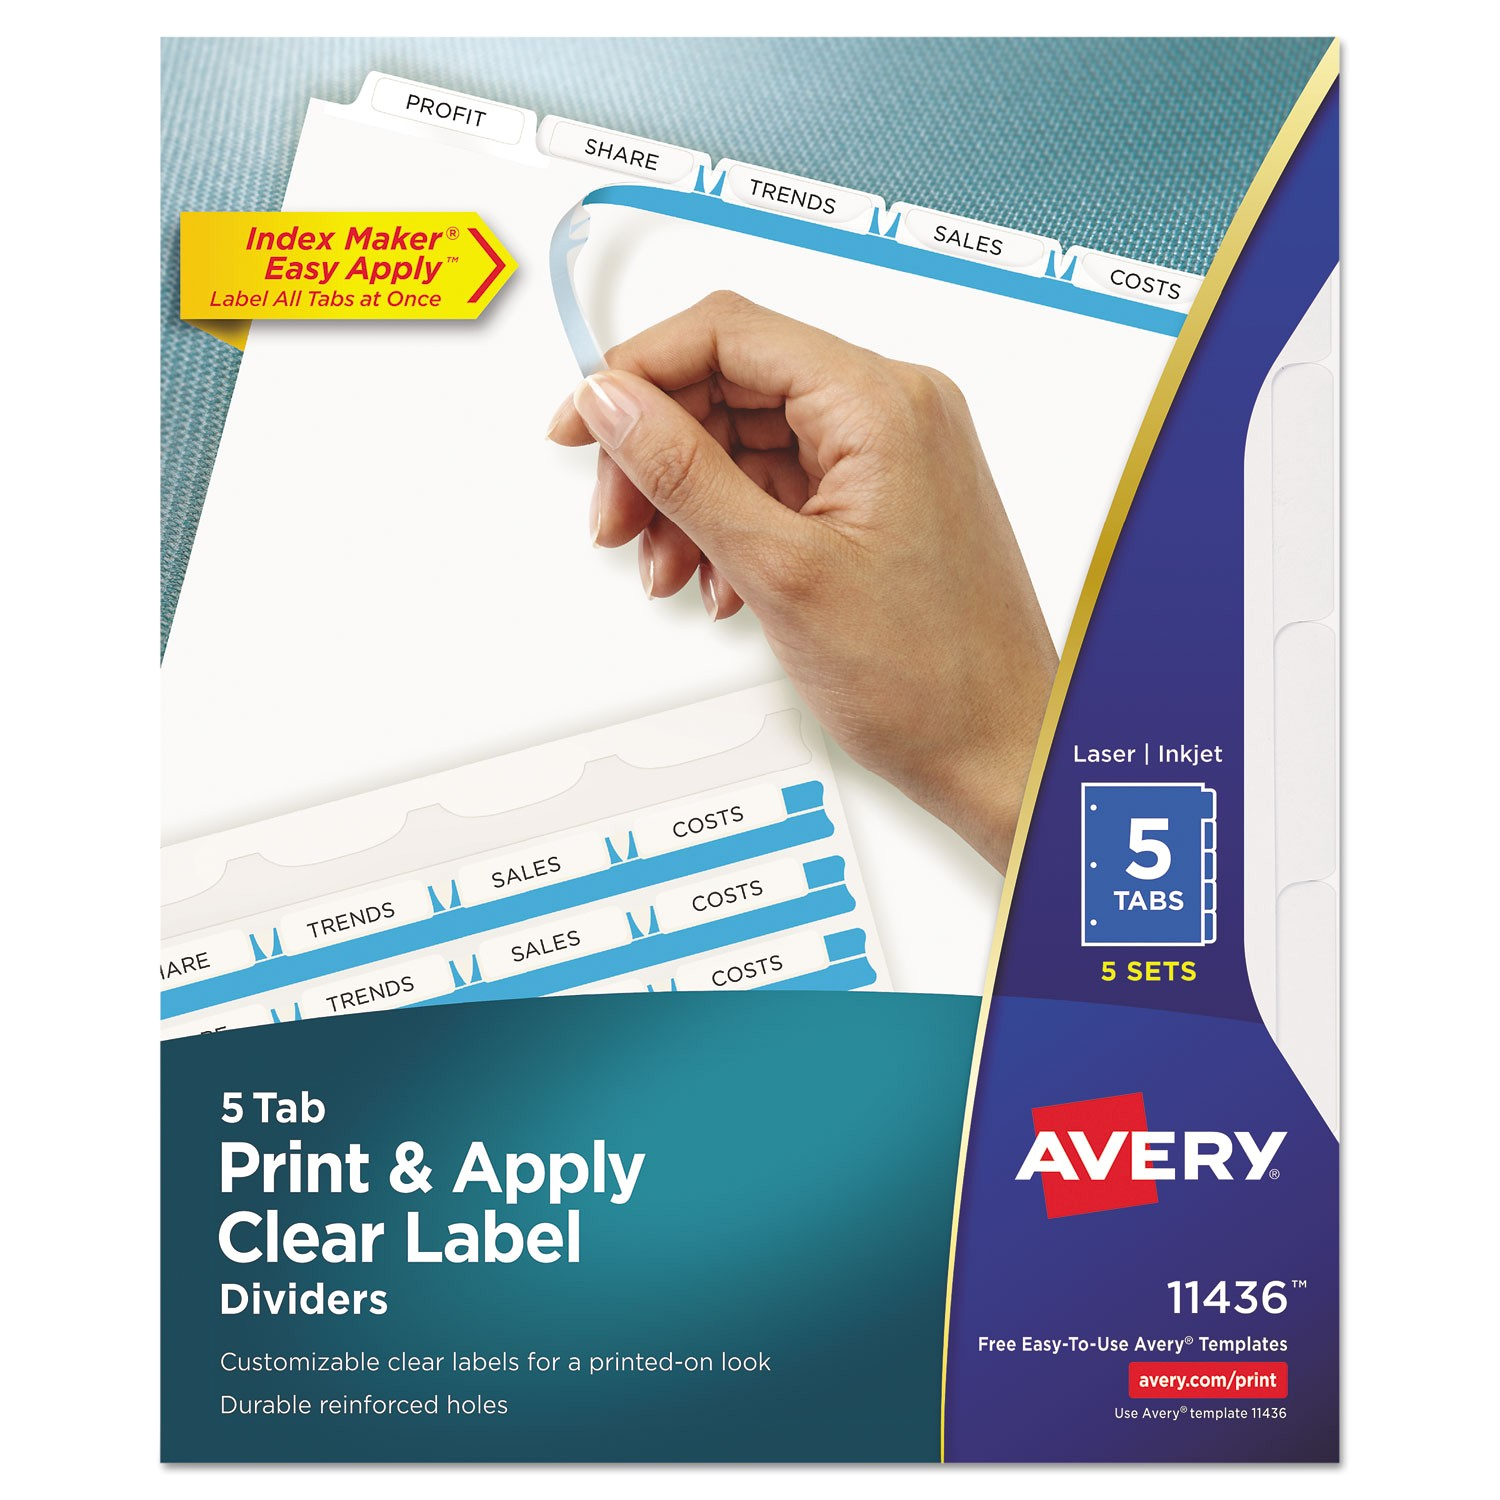 ave11436 index maker clear label dividers 5 tab letter white 5 sets pack